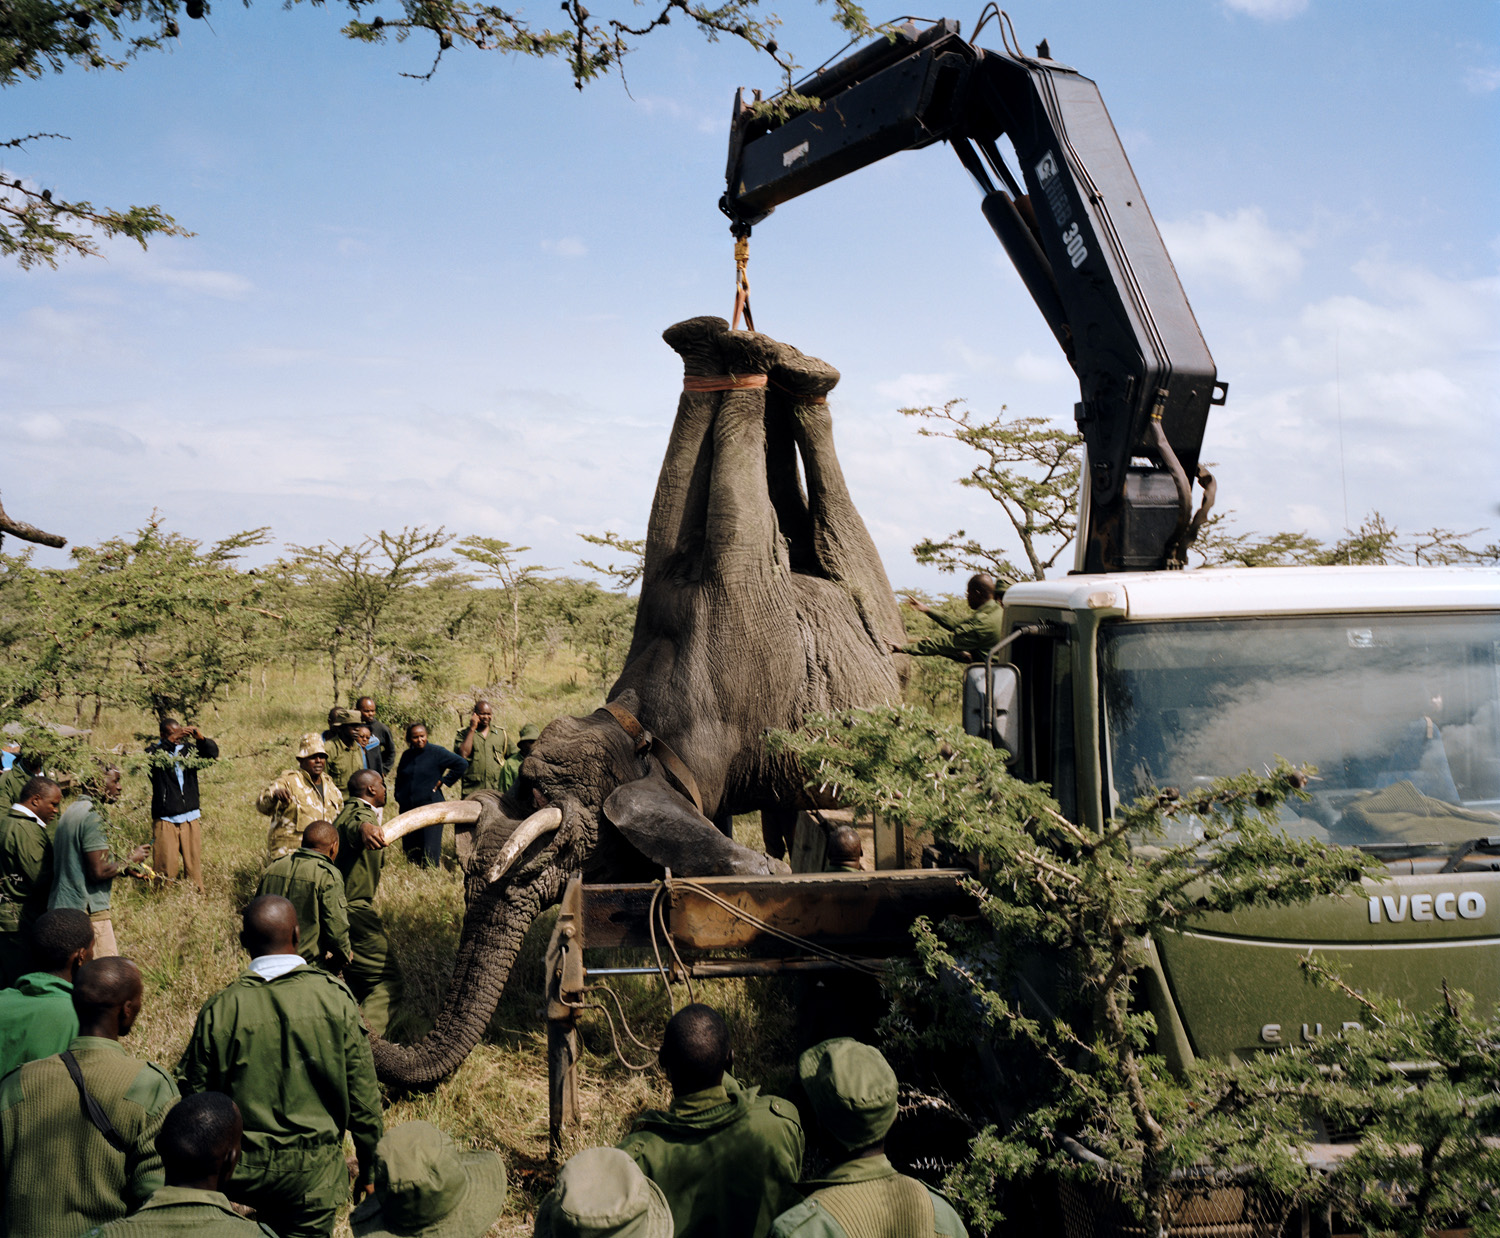 Wildlife rangers prepare to relocate a troublesome elephant from the                      Ol Pejeta Conservancy to Meru National Park